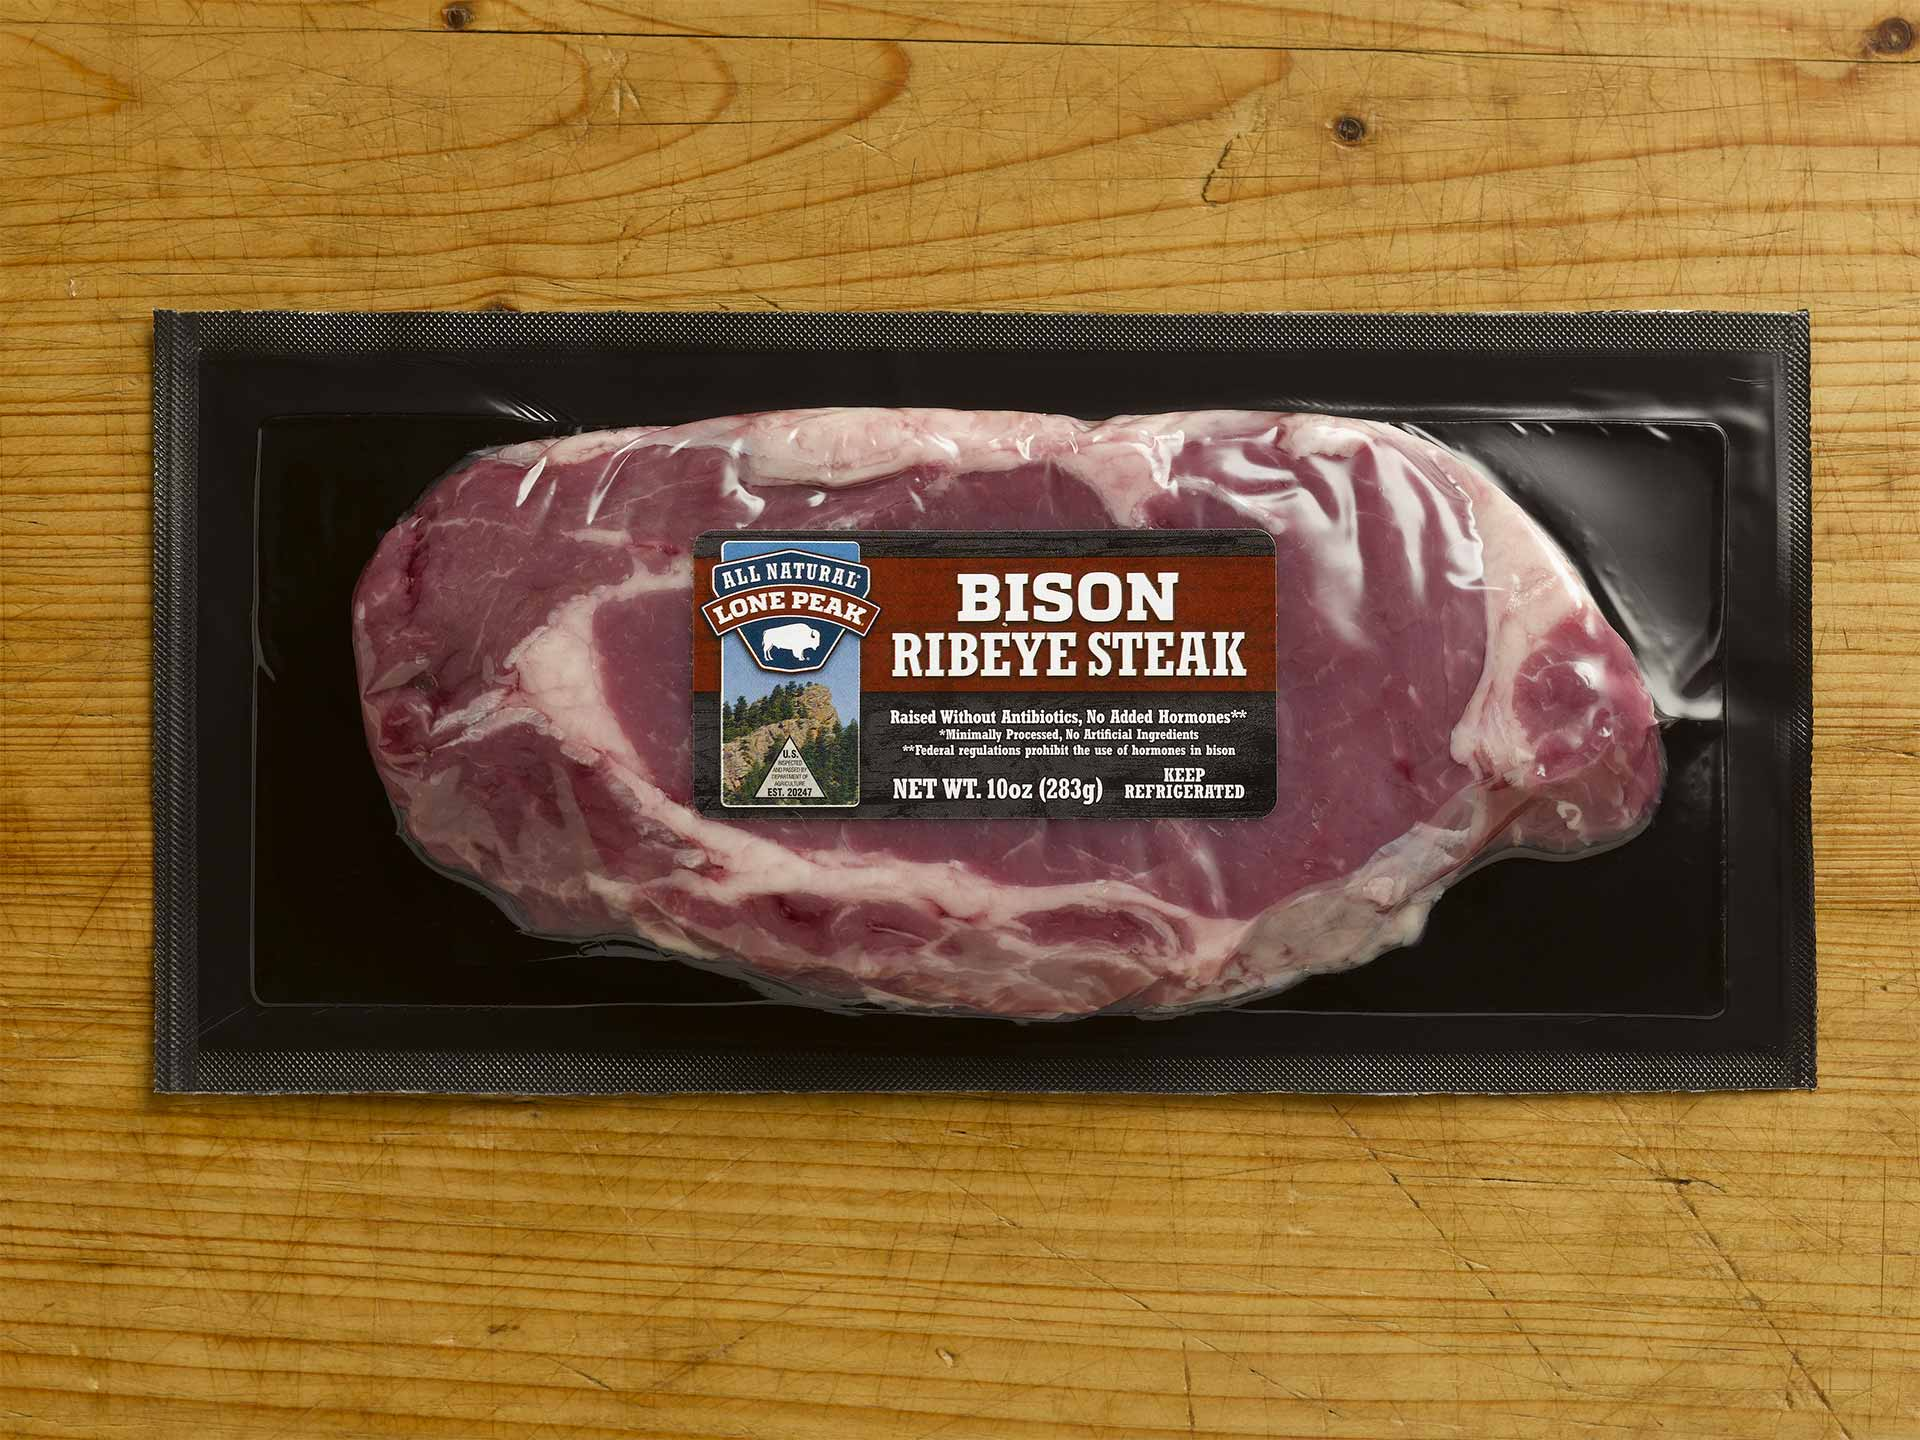 Bison Ribeye Steak